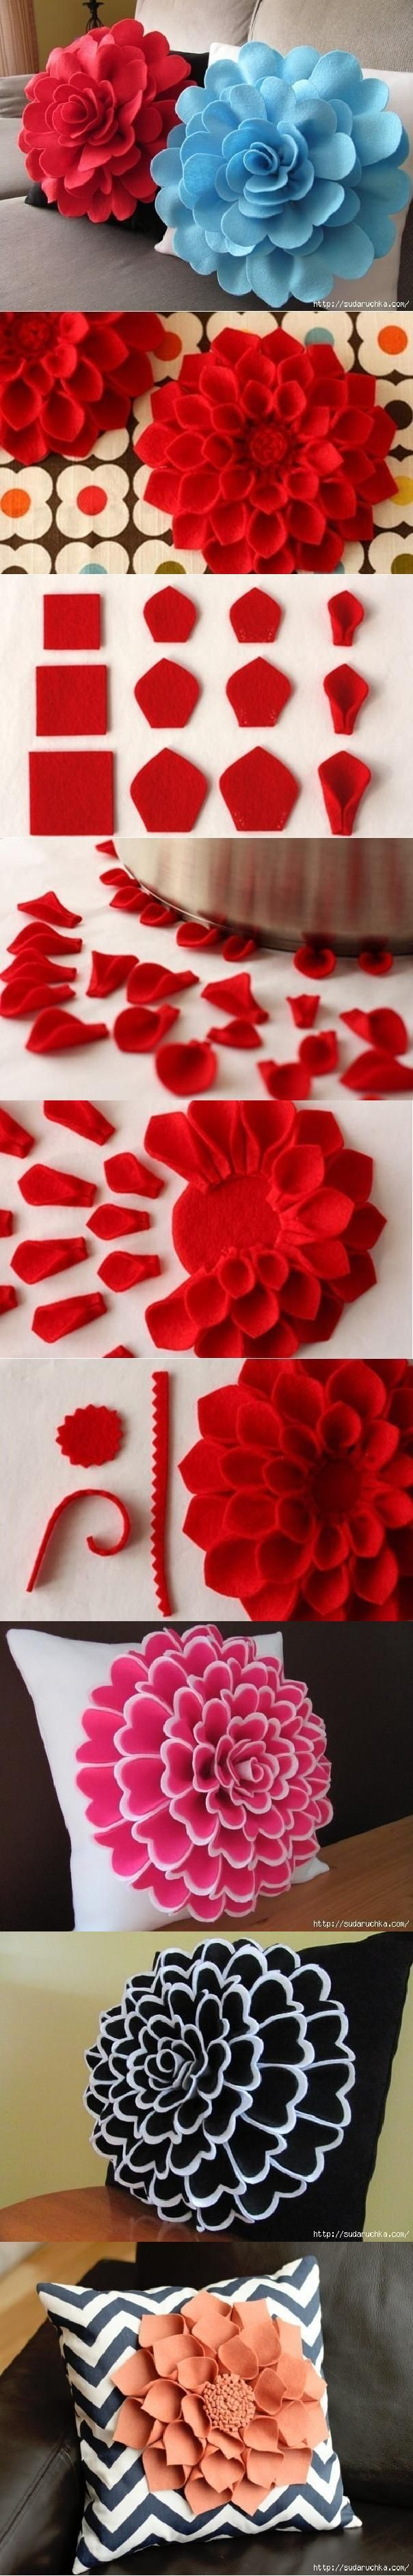 DIY Tutorial DIY Pillow Shams / DIY Decorative Felt Flower Pillow - Bead&Cord